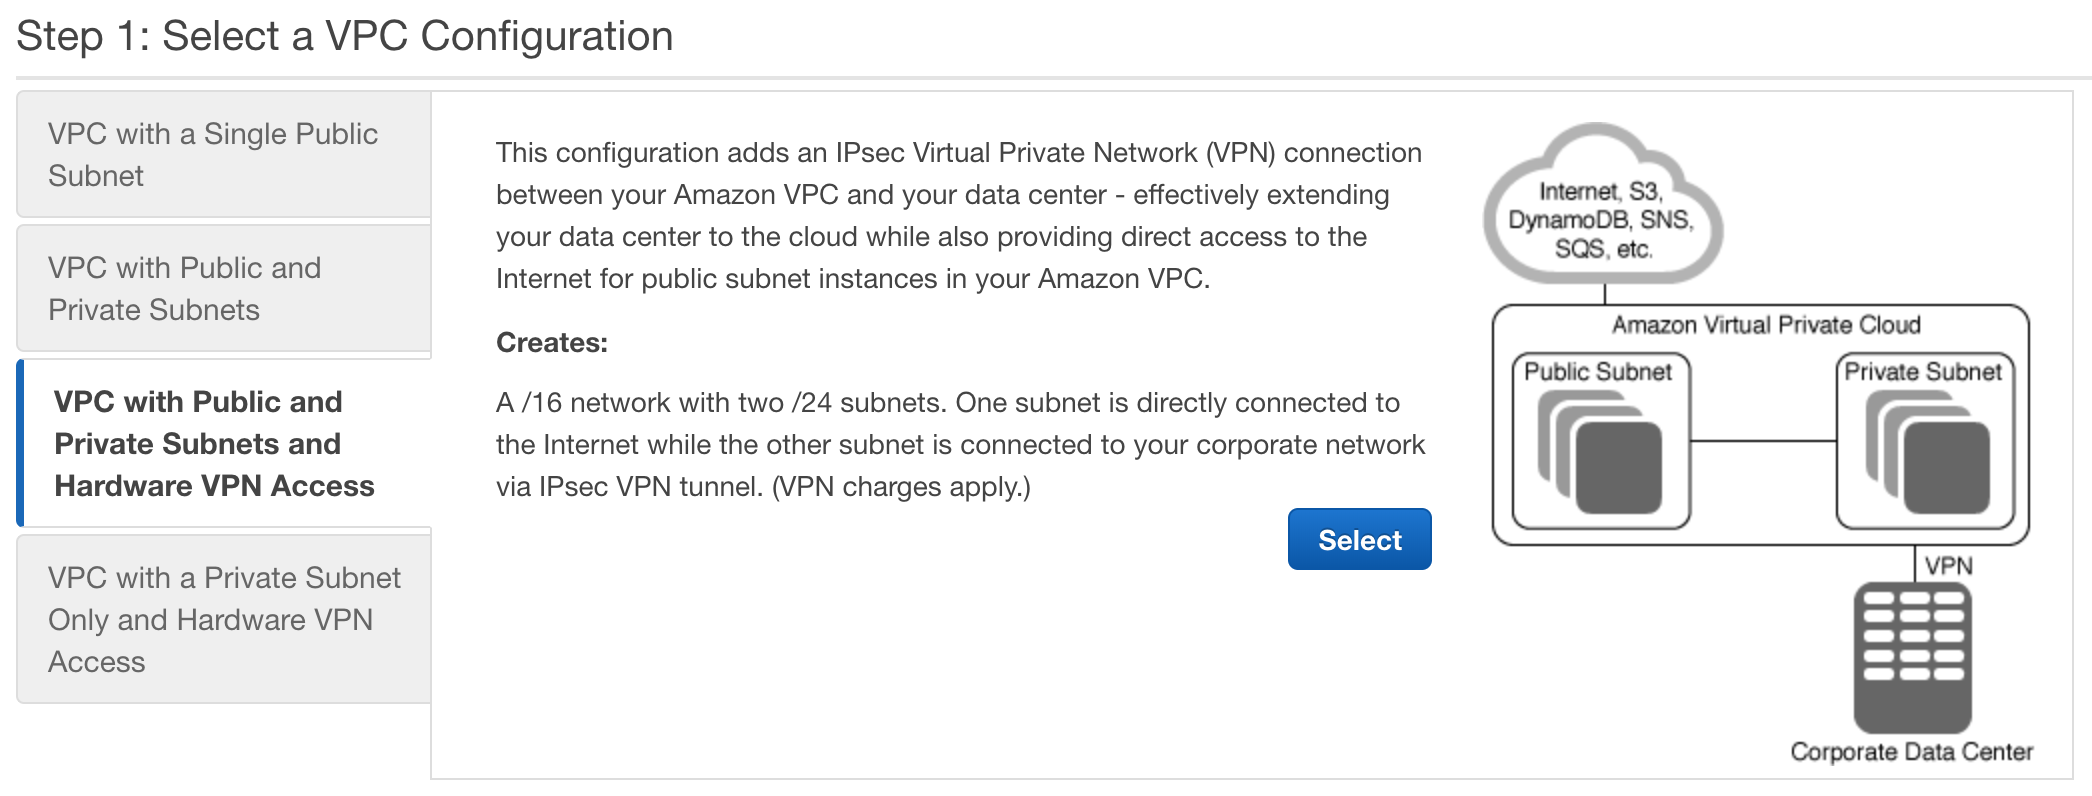 AWS VPC Creation Step By Step - Tutorial With Images - AWS Coach